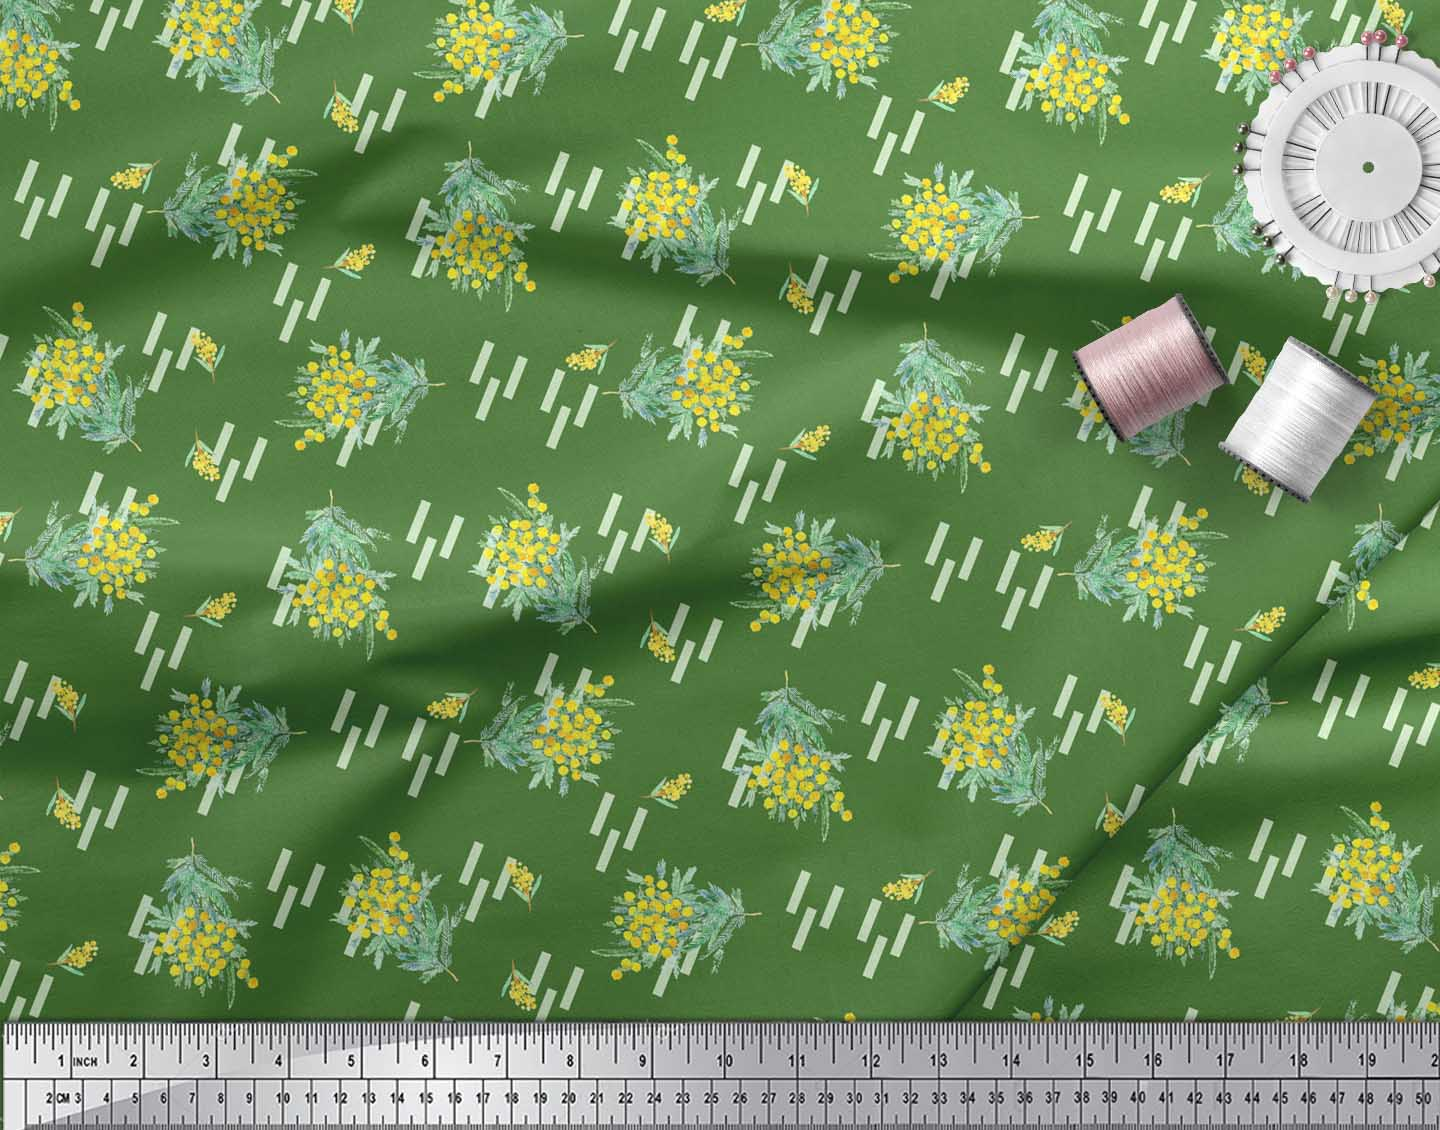 Soimoi-Green-Cotton-Poplin-Fabric-Leaves-amp-Floral-Print-Sewing-Fabric-QW7 thumbnail 4